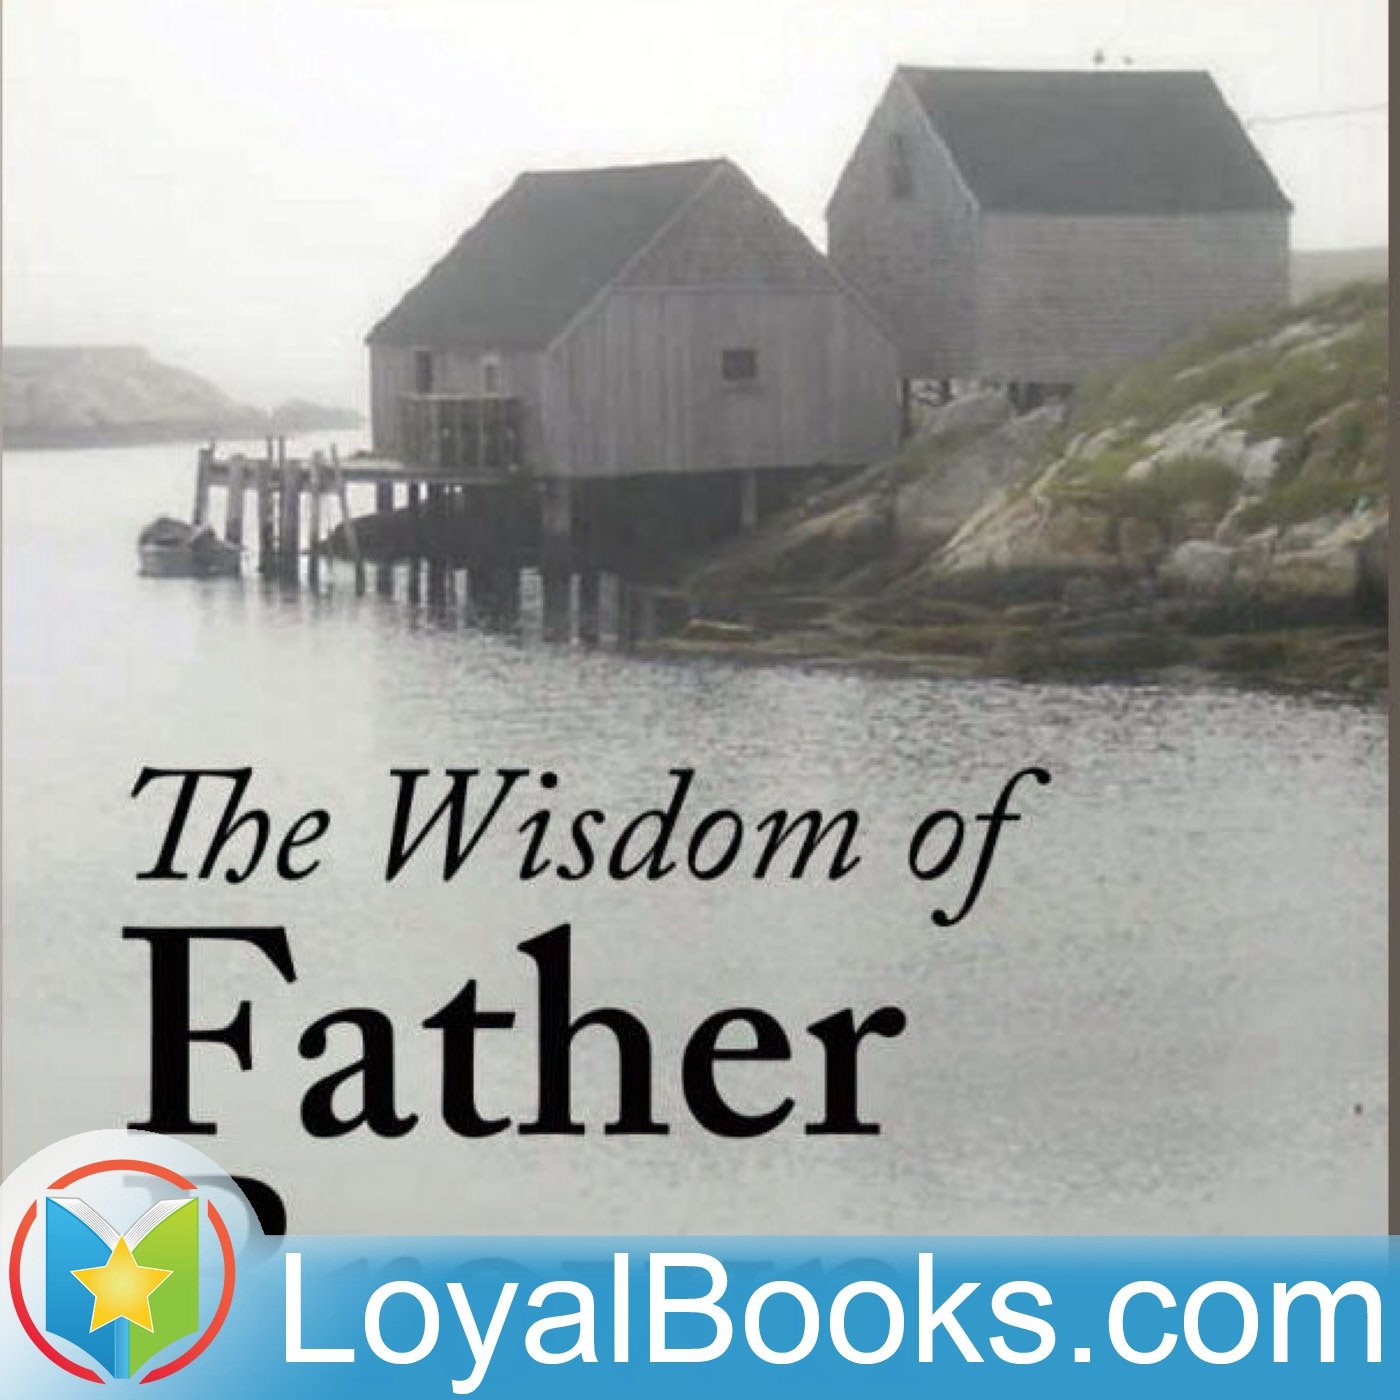 <![CDATA[The Wisdom of Father Brown by G. K. Chesterton]]>